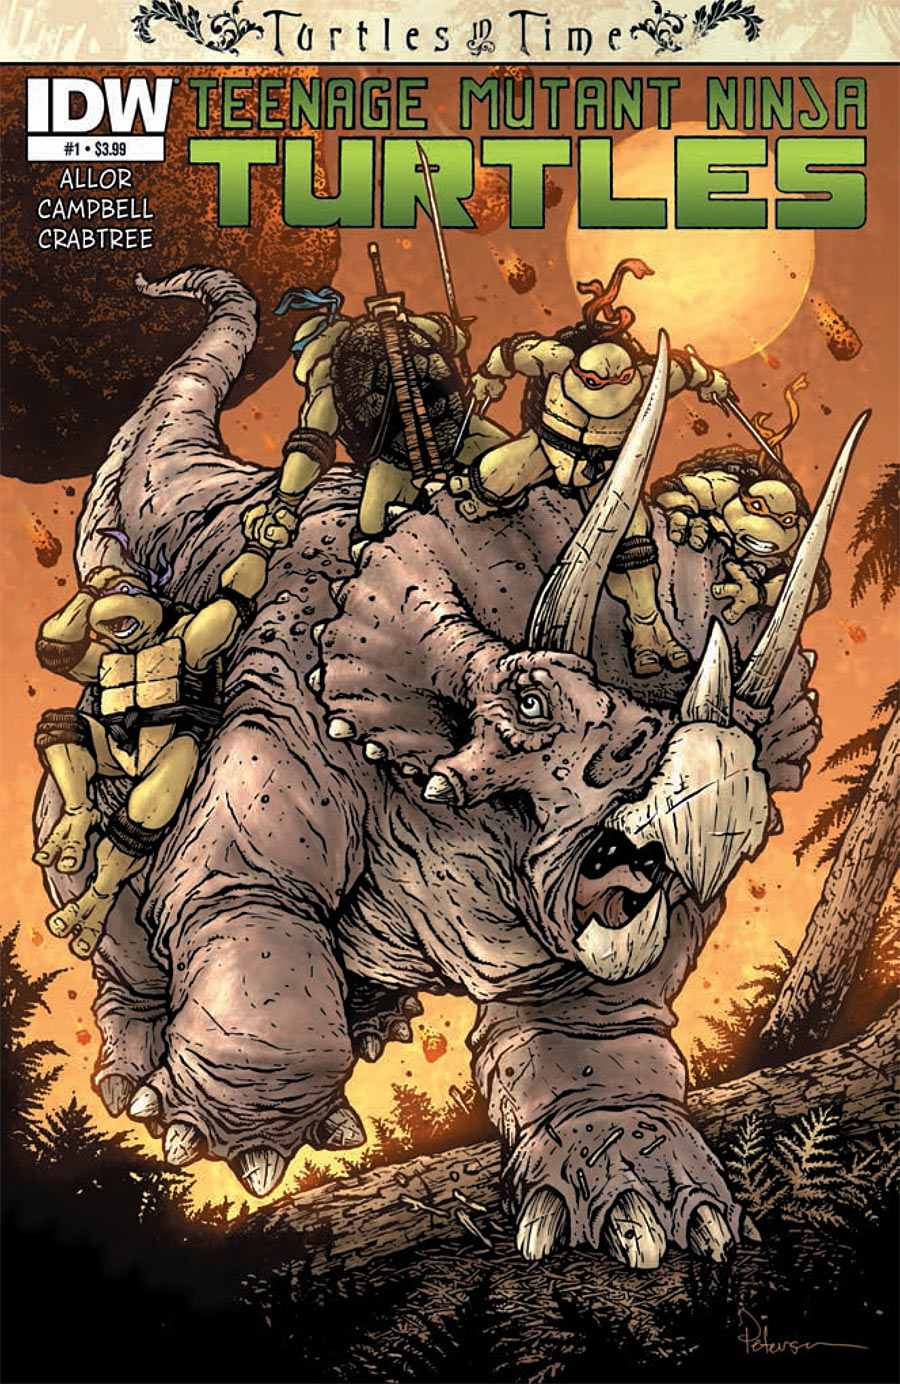 Teenage Mutant Ninja Turtles: Turtles in Time #1